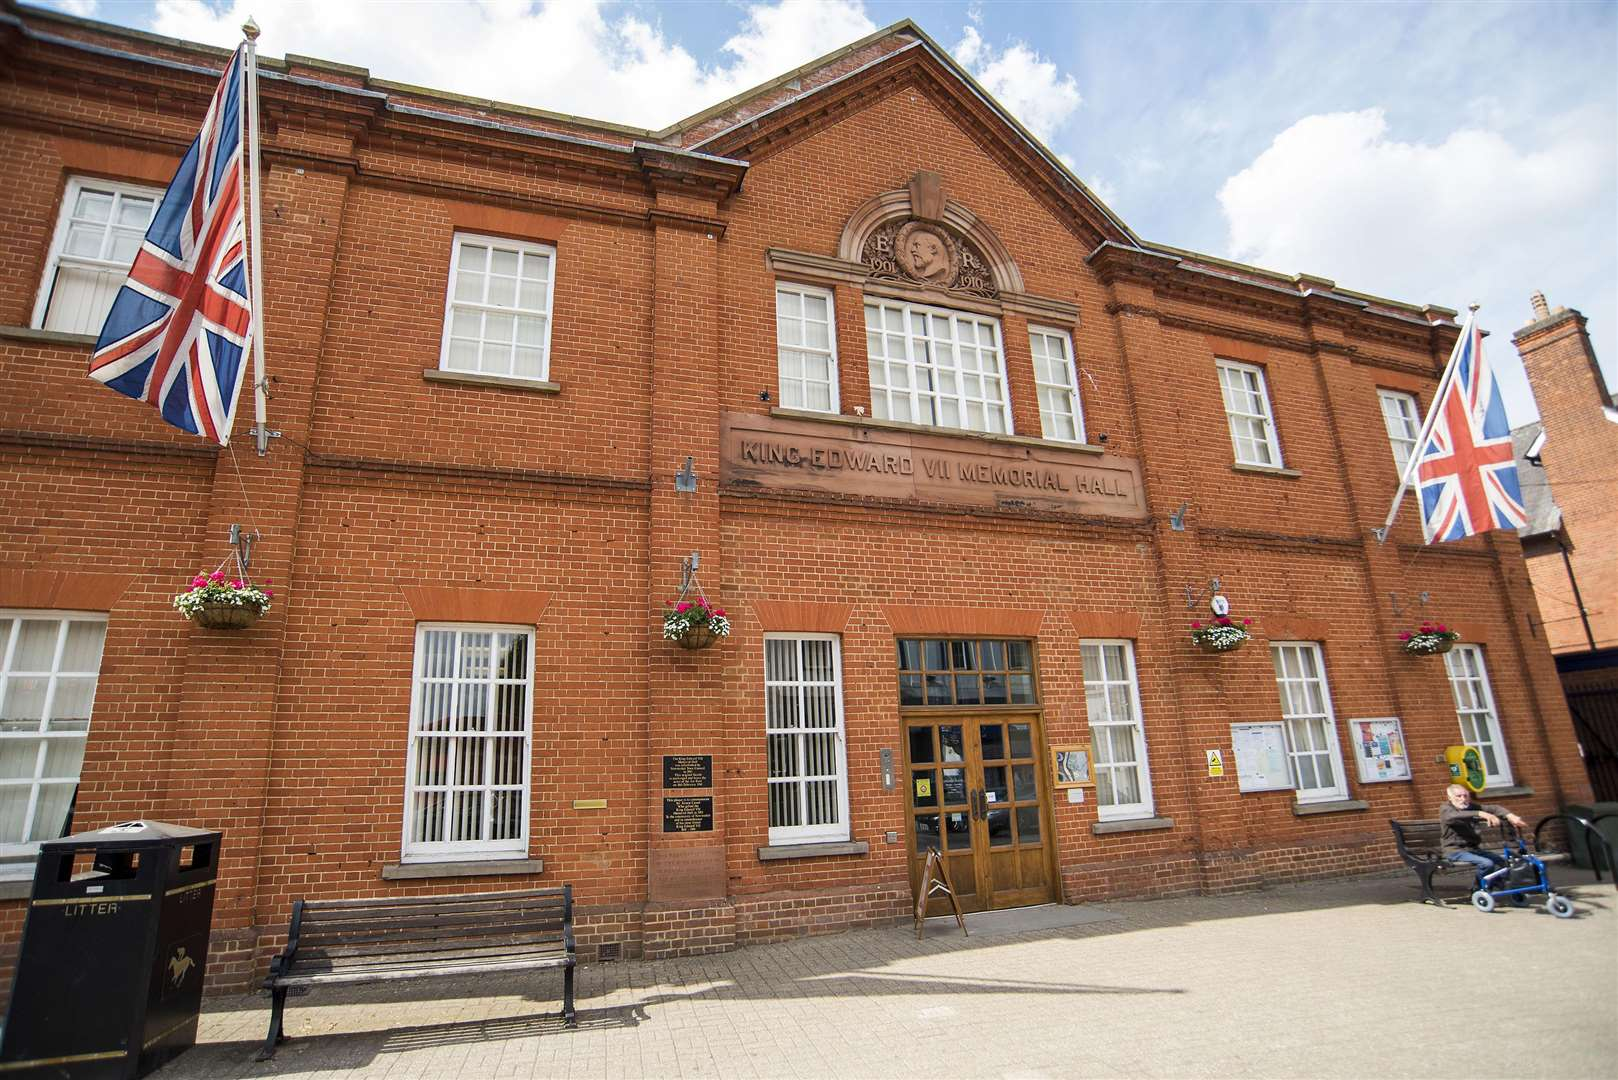 Newmarket's memorial hall, where councillors voted 12-3 to continue their objection